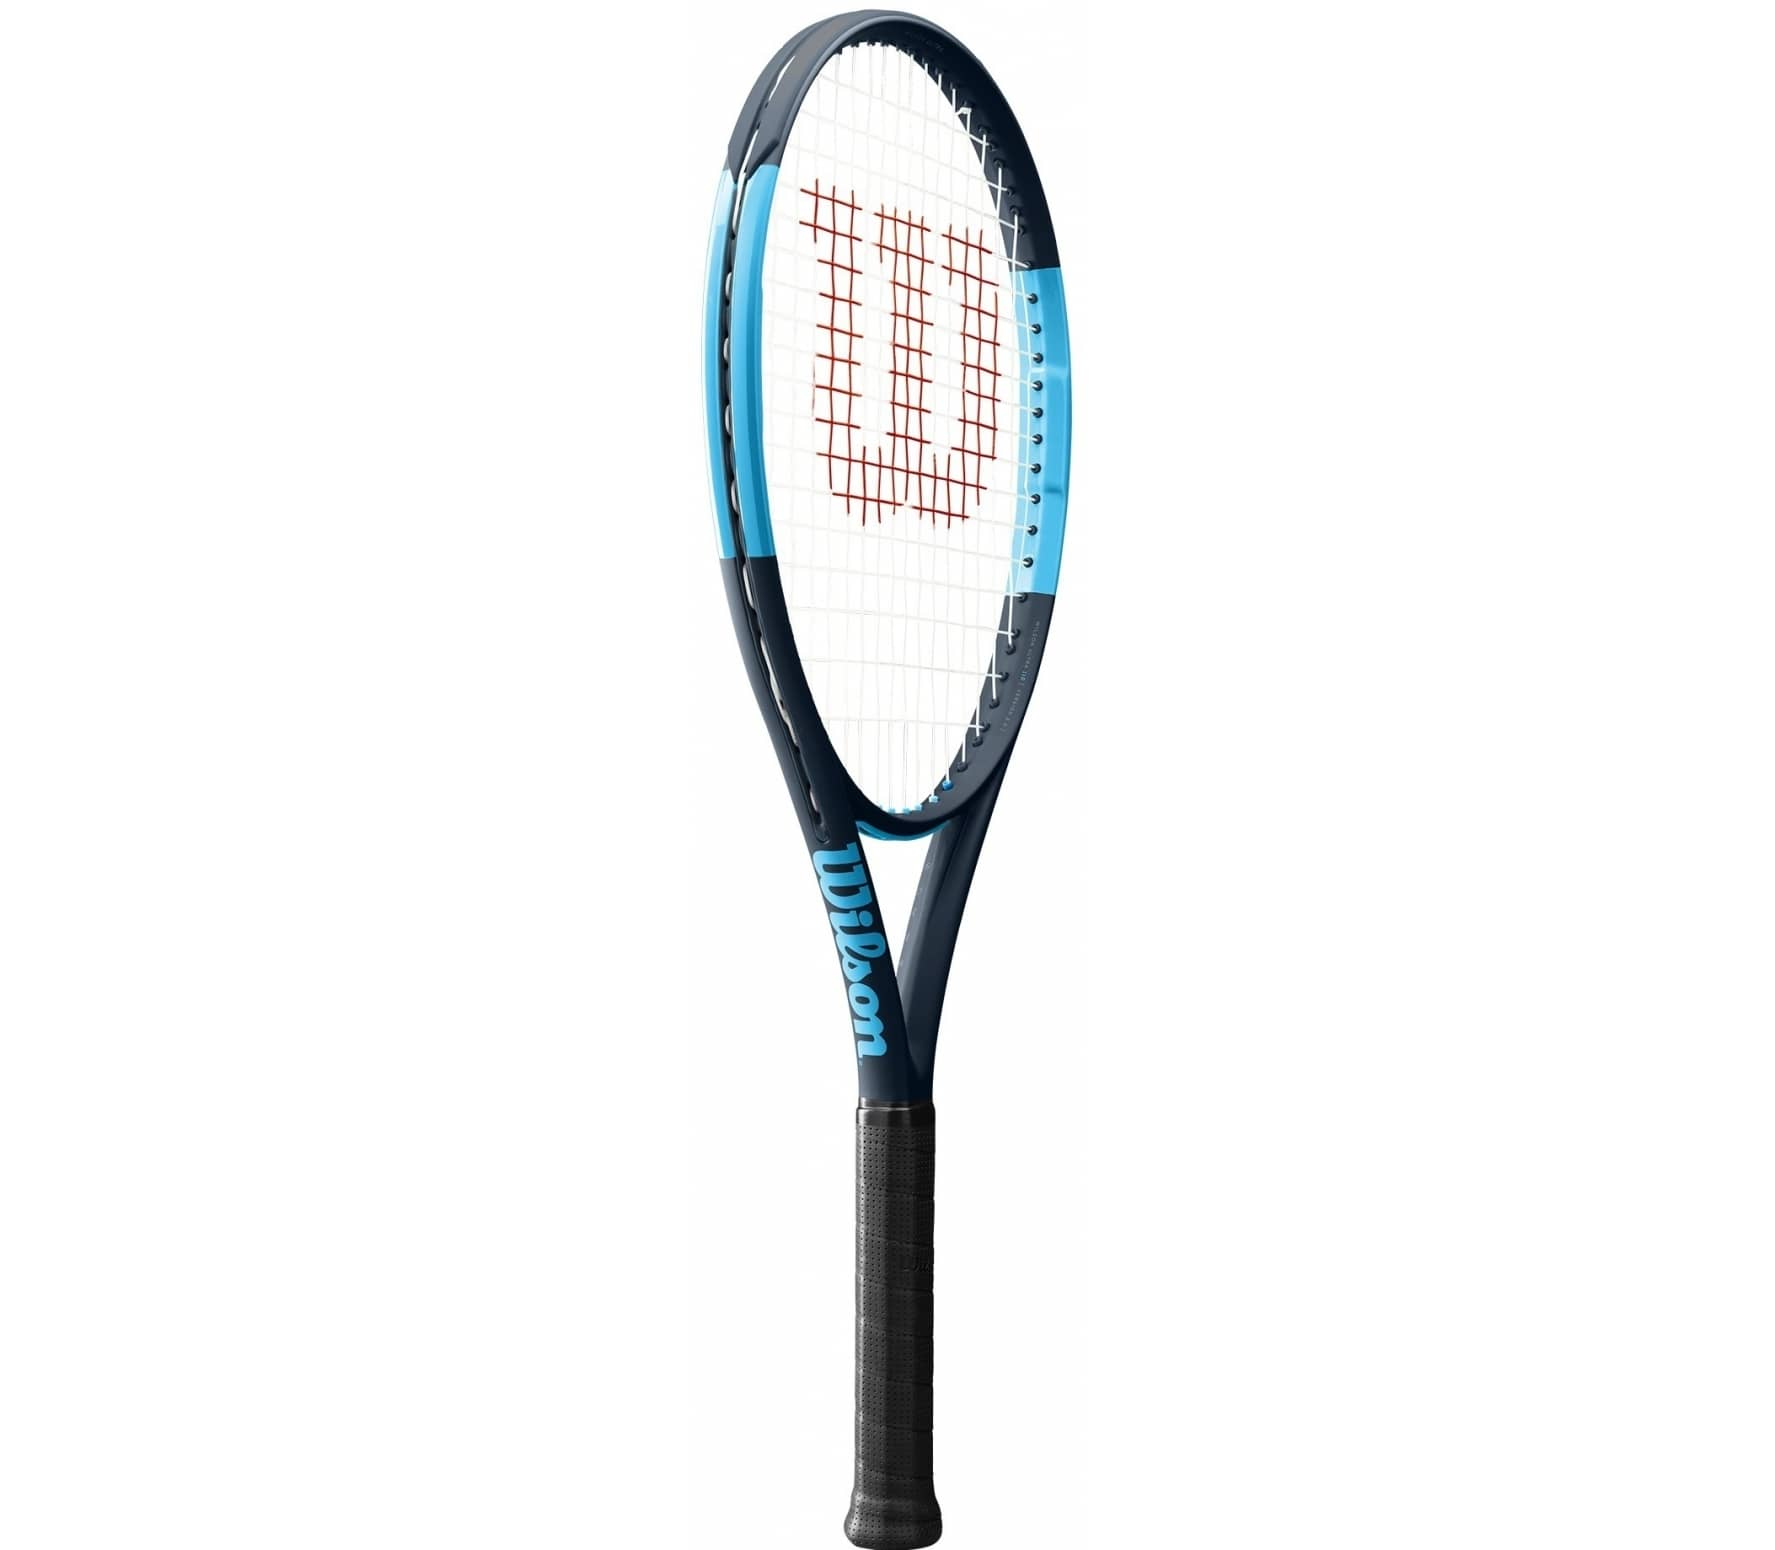 Wilson - ULTRA 110 unstrung tennis racket (blue)